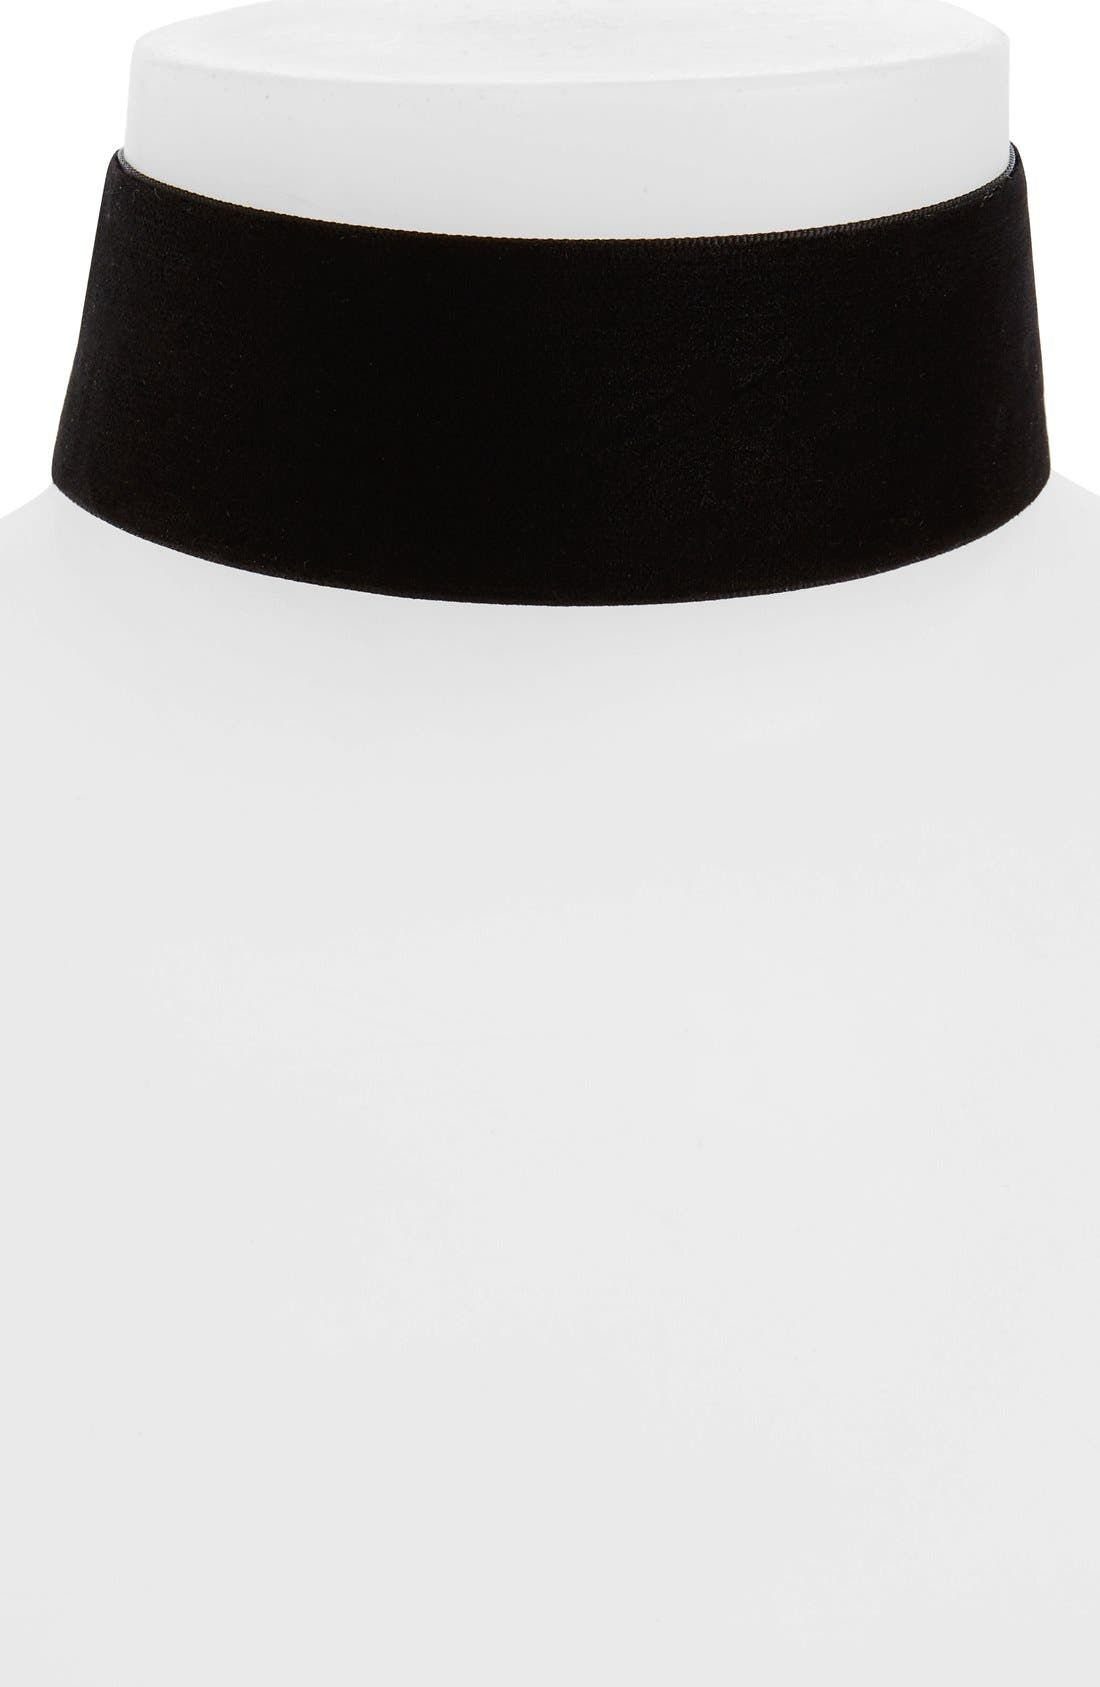 Alternate Image 1 Selected - Topshop Thick Velvet Choker